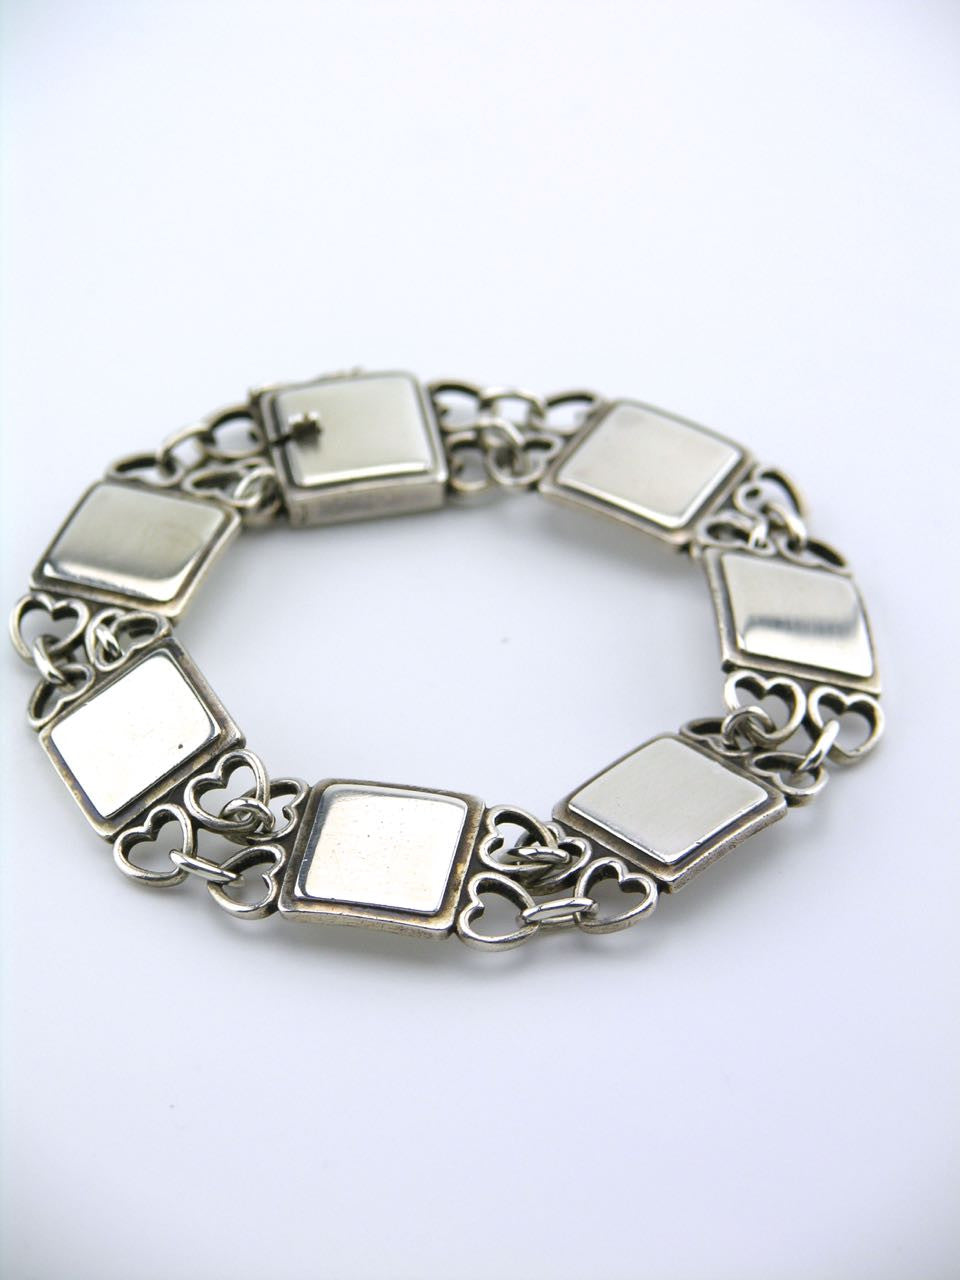 Georg Jensen silver hearts and squares bracelet - design 70